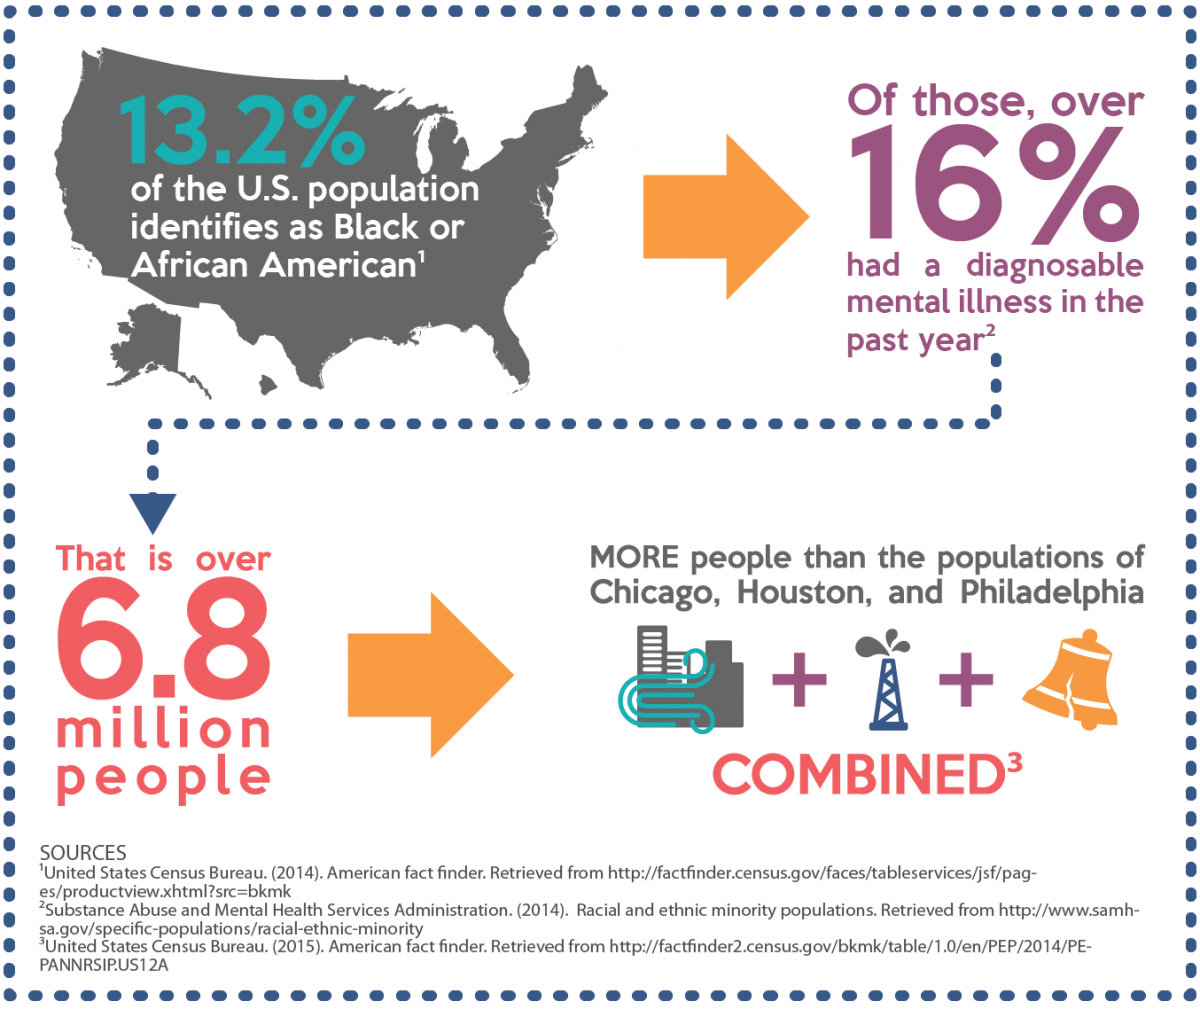 Prevalence Mental Health Issues Black and African Americans